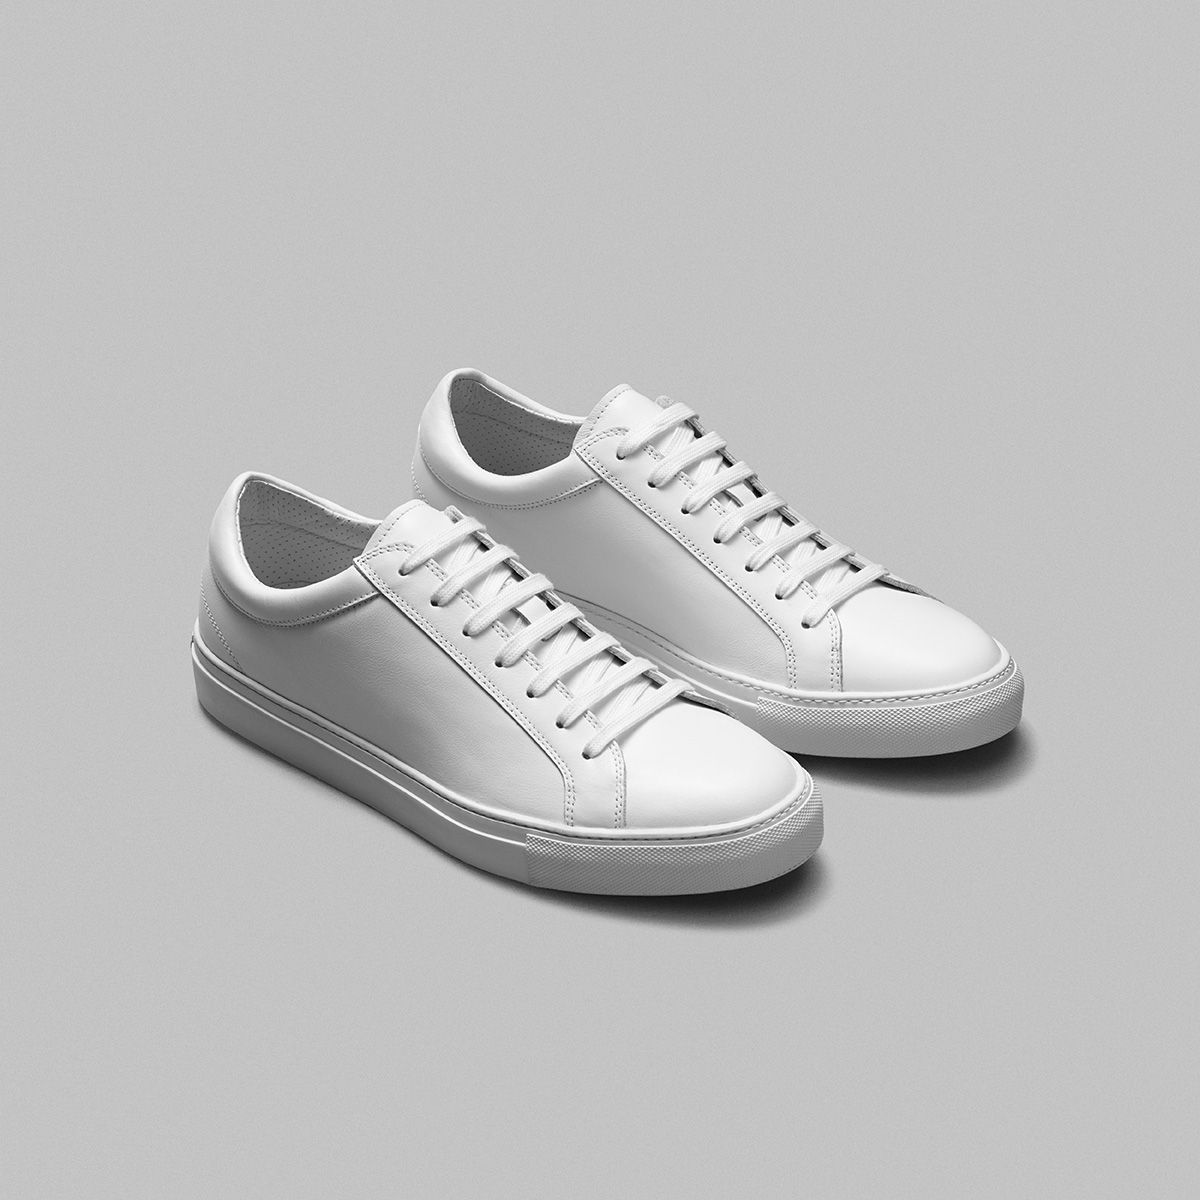 09f6dc7054a White Leather Sneaker 100% calf leather with a perforated leather lining  and a stitched on rubber sole. No logos or labels. Made in Italy.